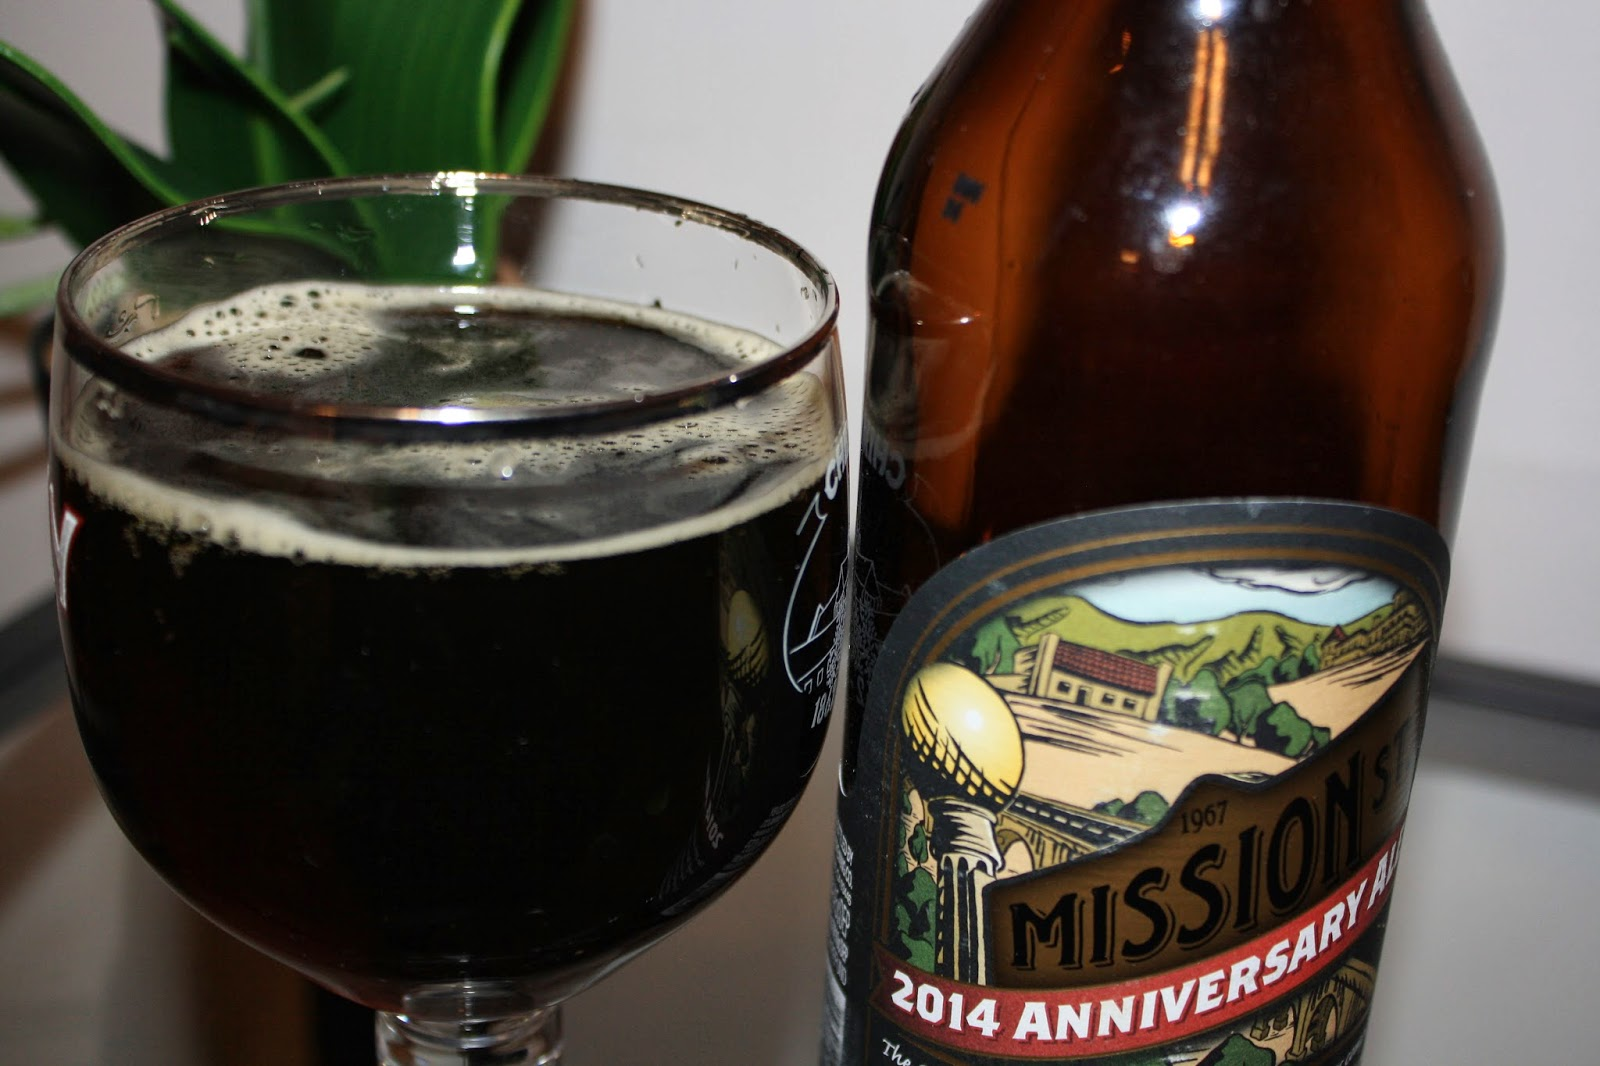 Trader Joe's, Mission St, 2014 Anniversary Ale